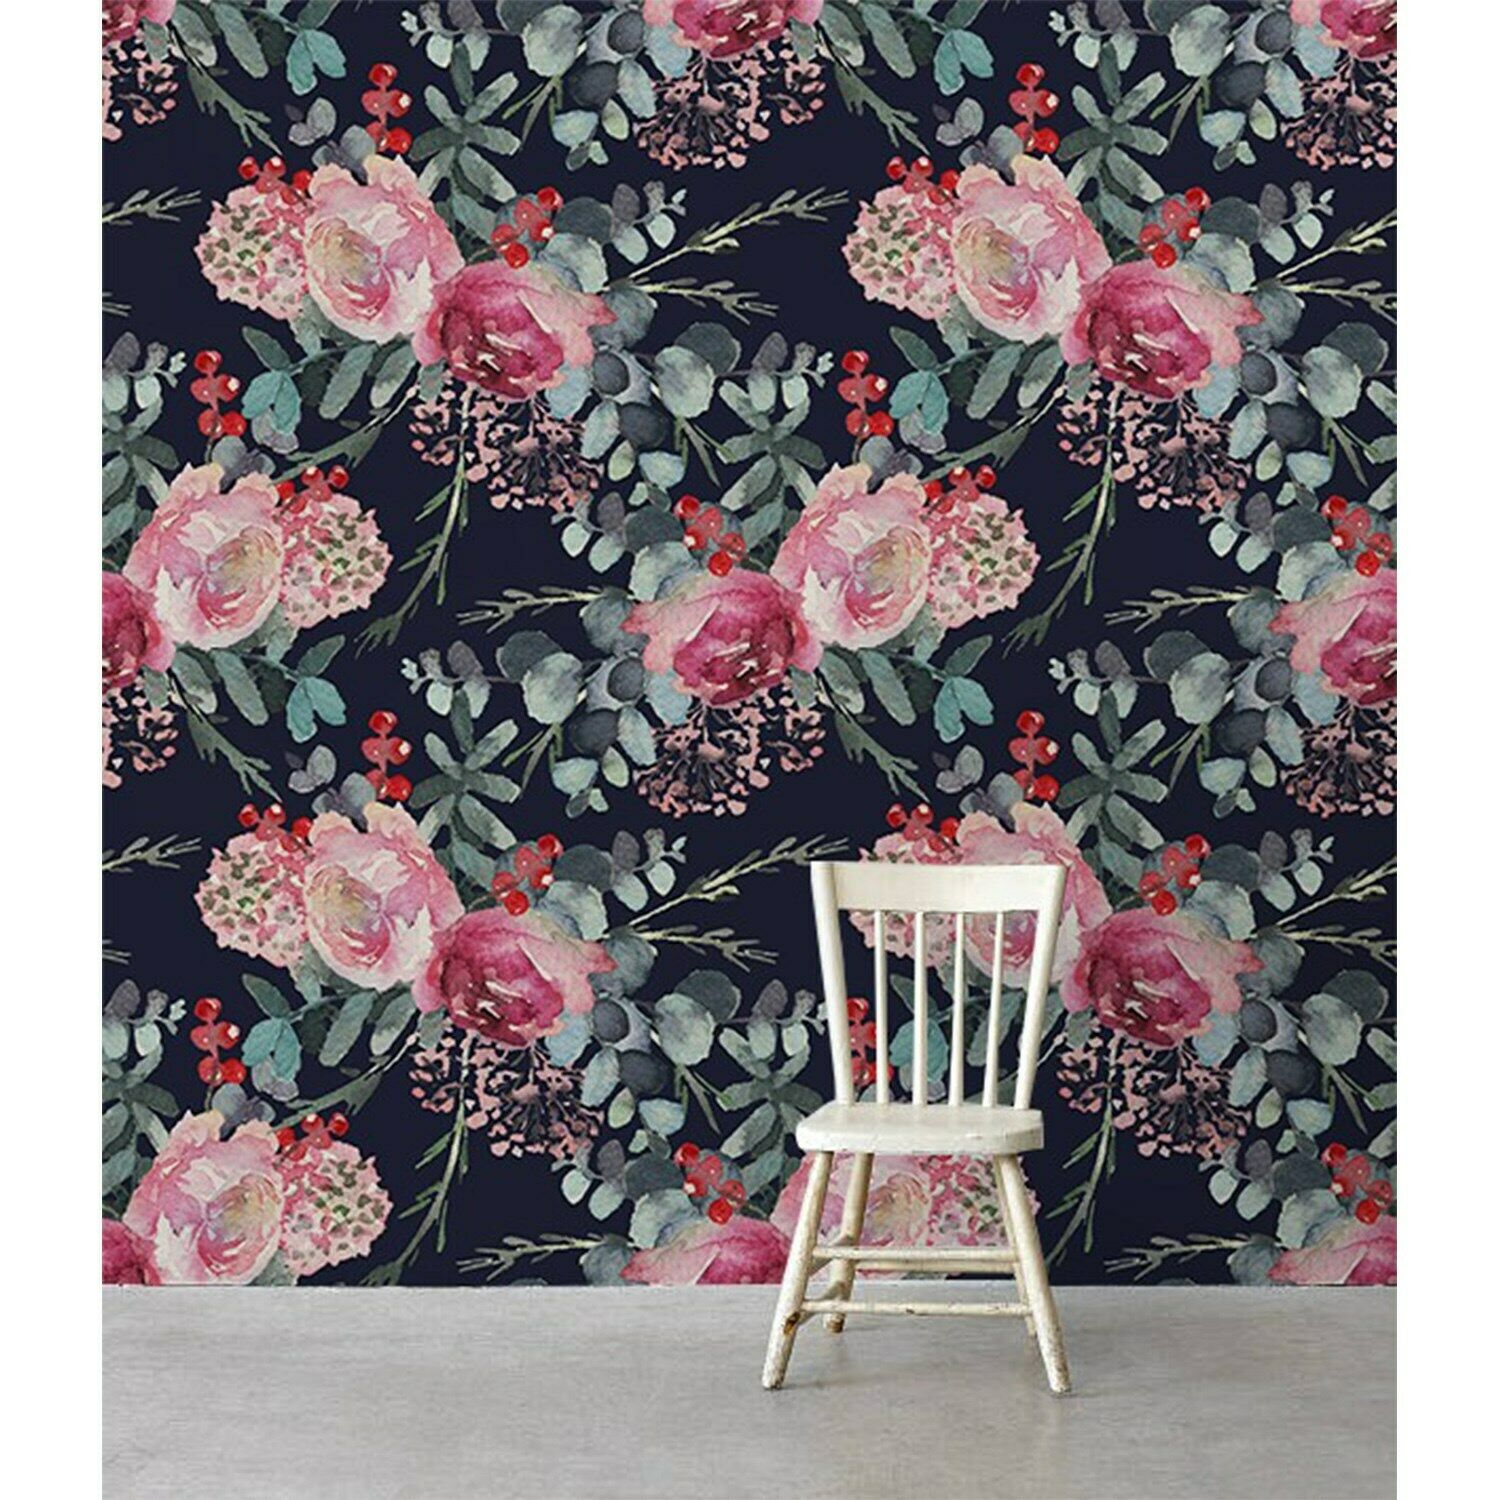 Non-Woven wallpaper Dark floral pinks with Rowan Pattern Vintage Watercolor